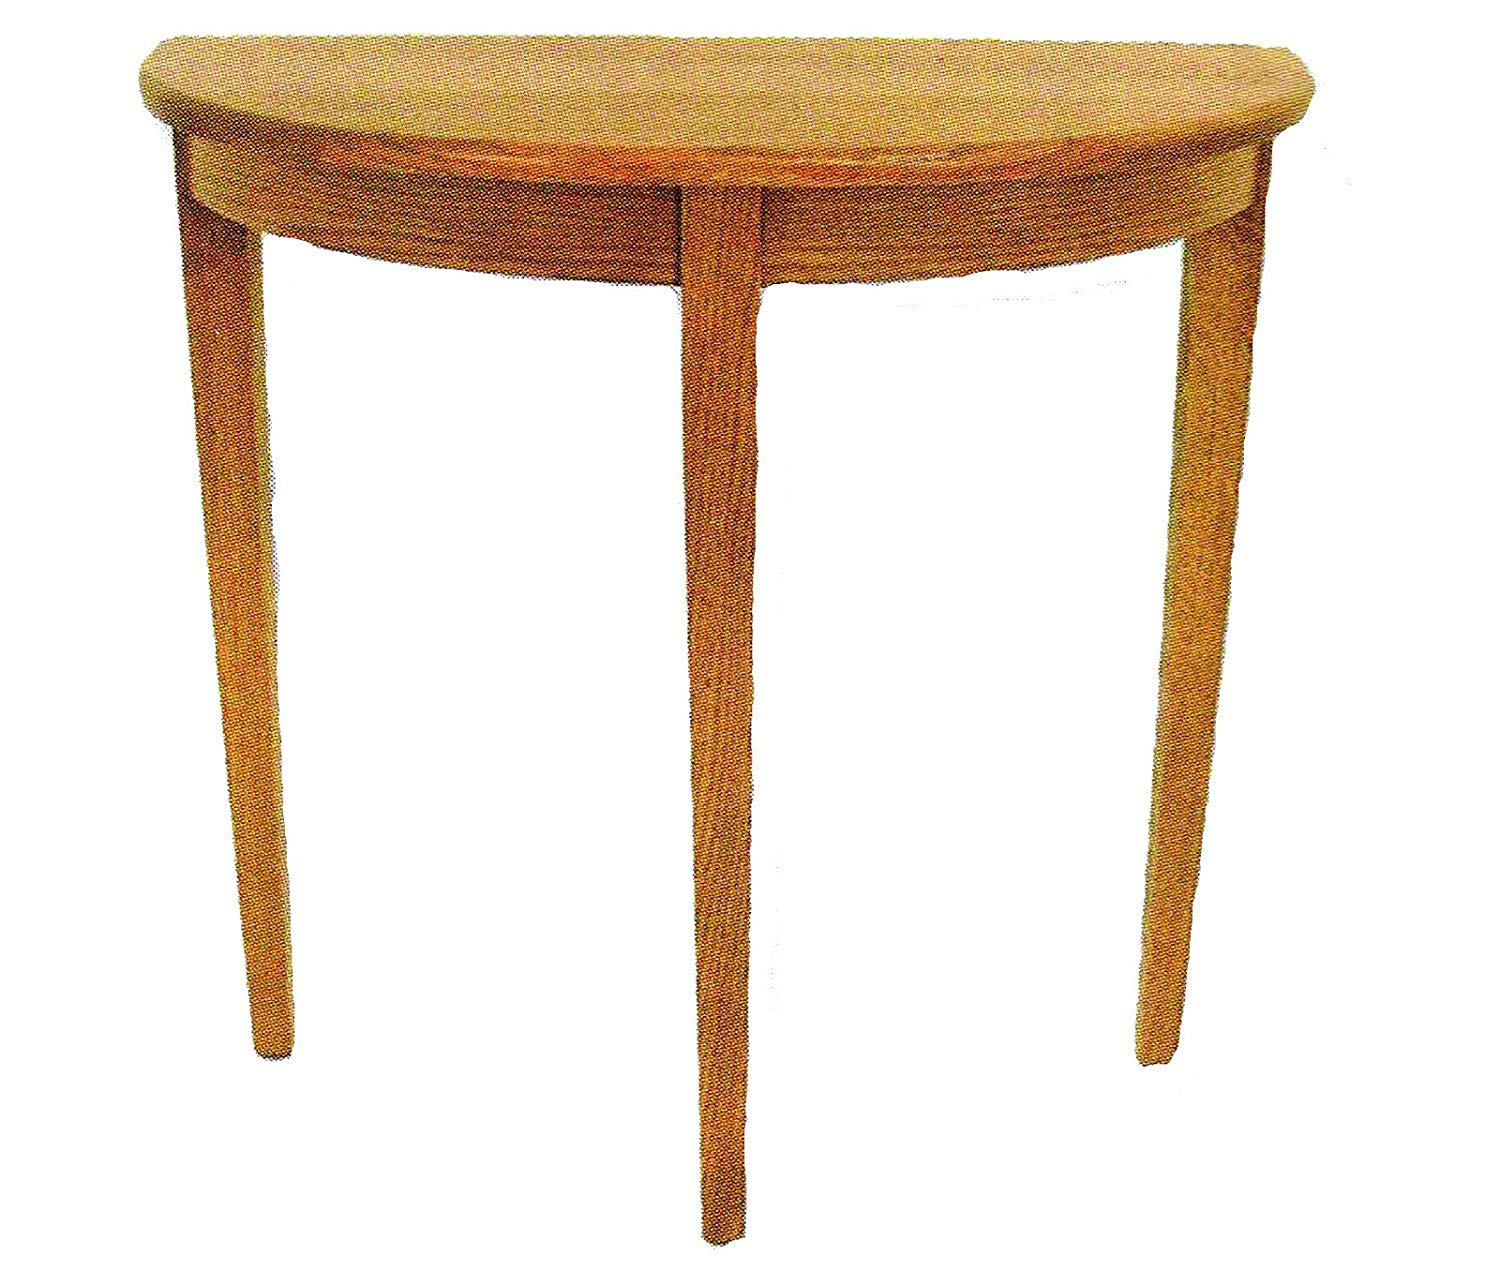 oak hall foyer half round accent table amish made usa kitchen dining vintage legs white leather trunk solid wood side tables wine cooler bucket build your own coffee cabin